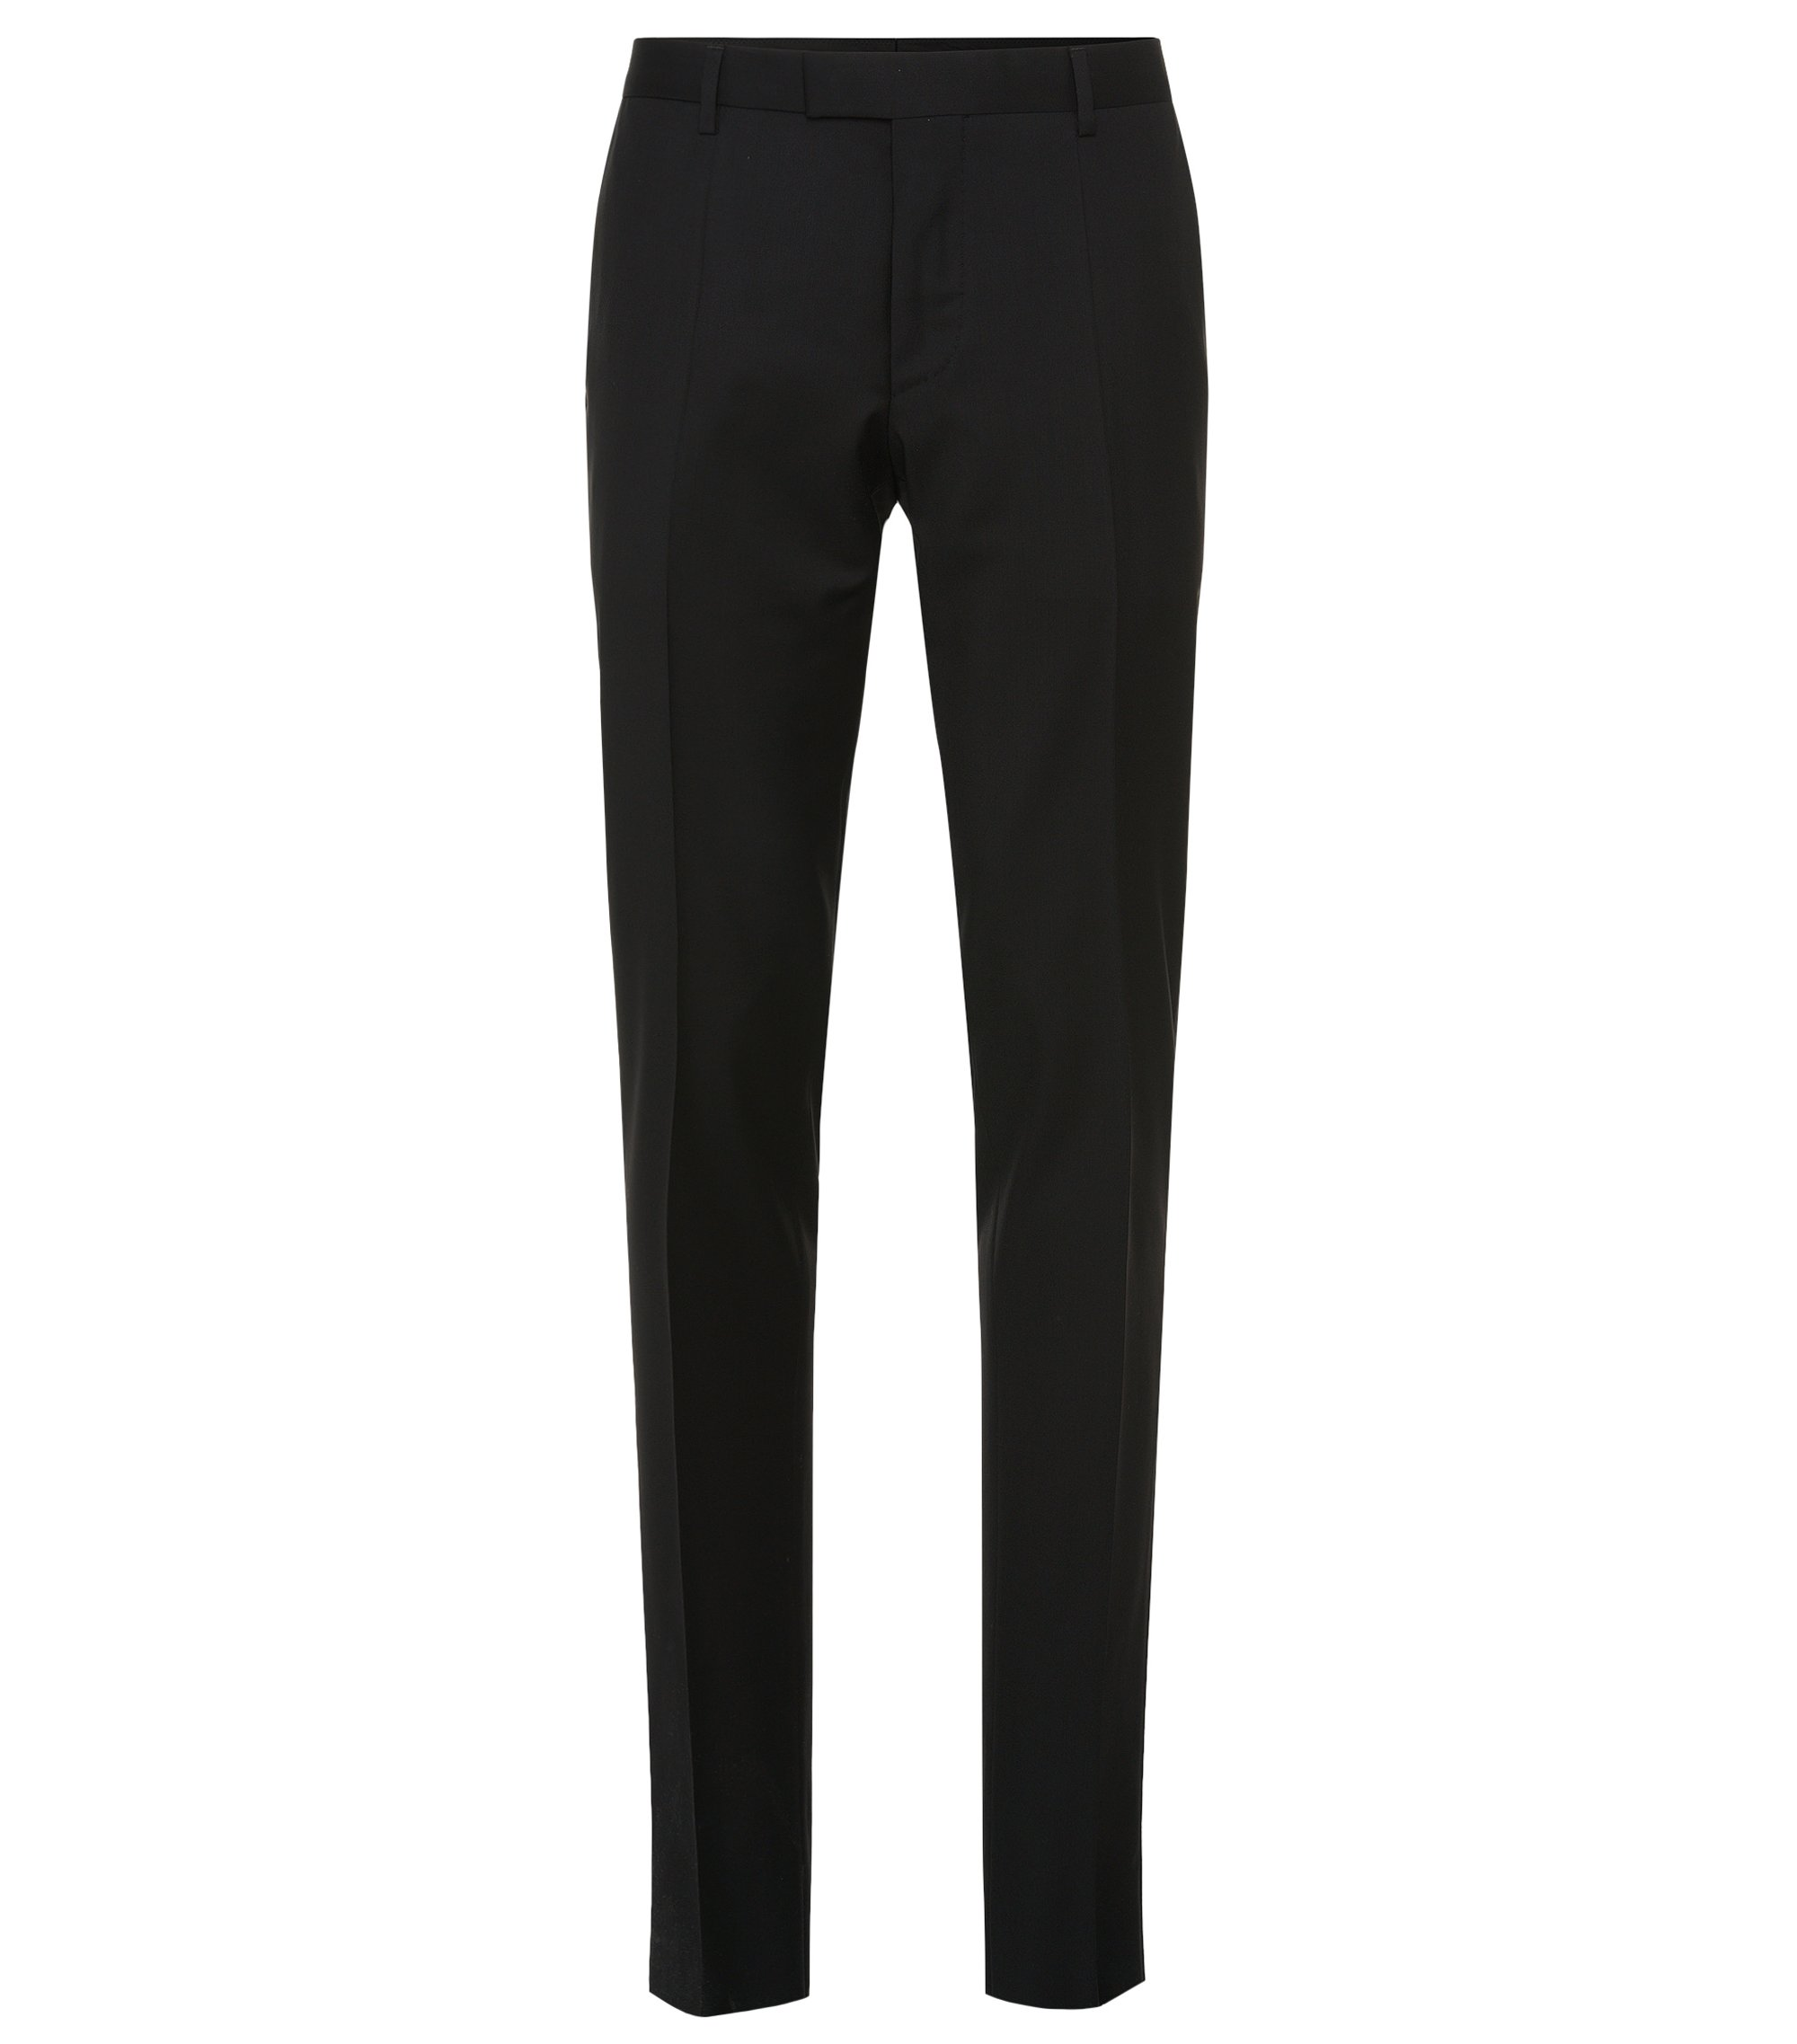 Pantalón Tailored slim fit en pura lana virgen: 'T-Court5', Negro